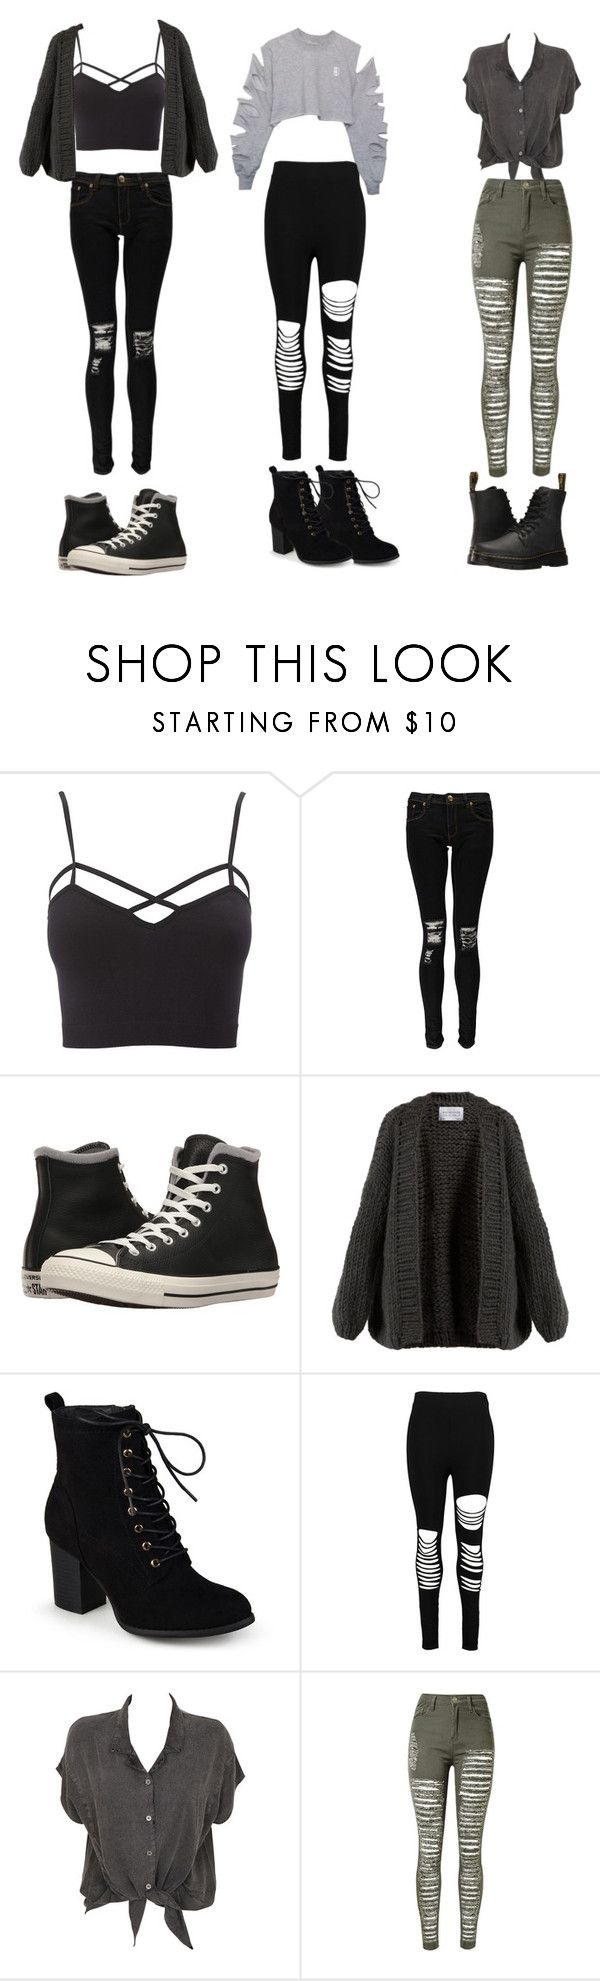 """My mood all the time"" by jennachurch ❤ liked on Polyvore featuring Charlotte Russe, Boohoo, Converse, I Love Mr. Mittens, Journee Collection, Evil Twin, WithChic, Dr. Martens and plus size clothing"